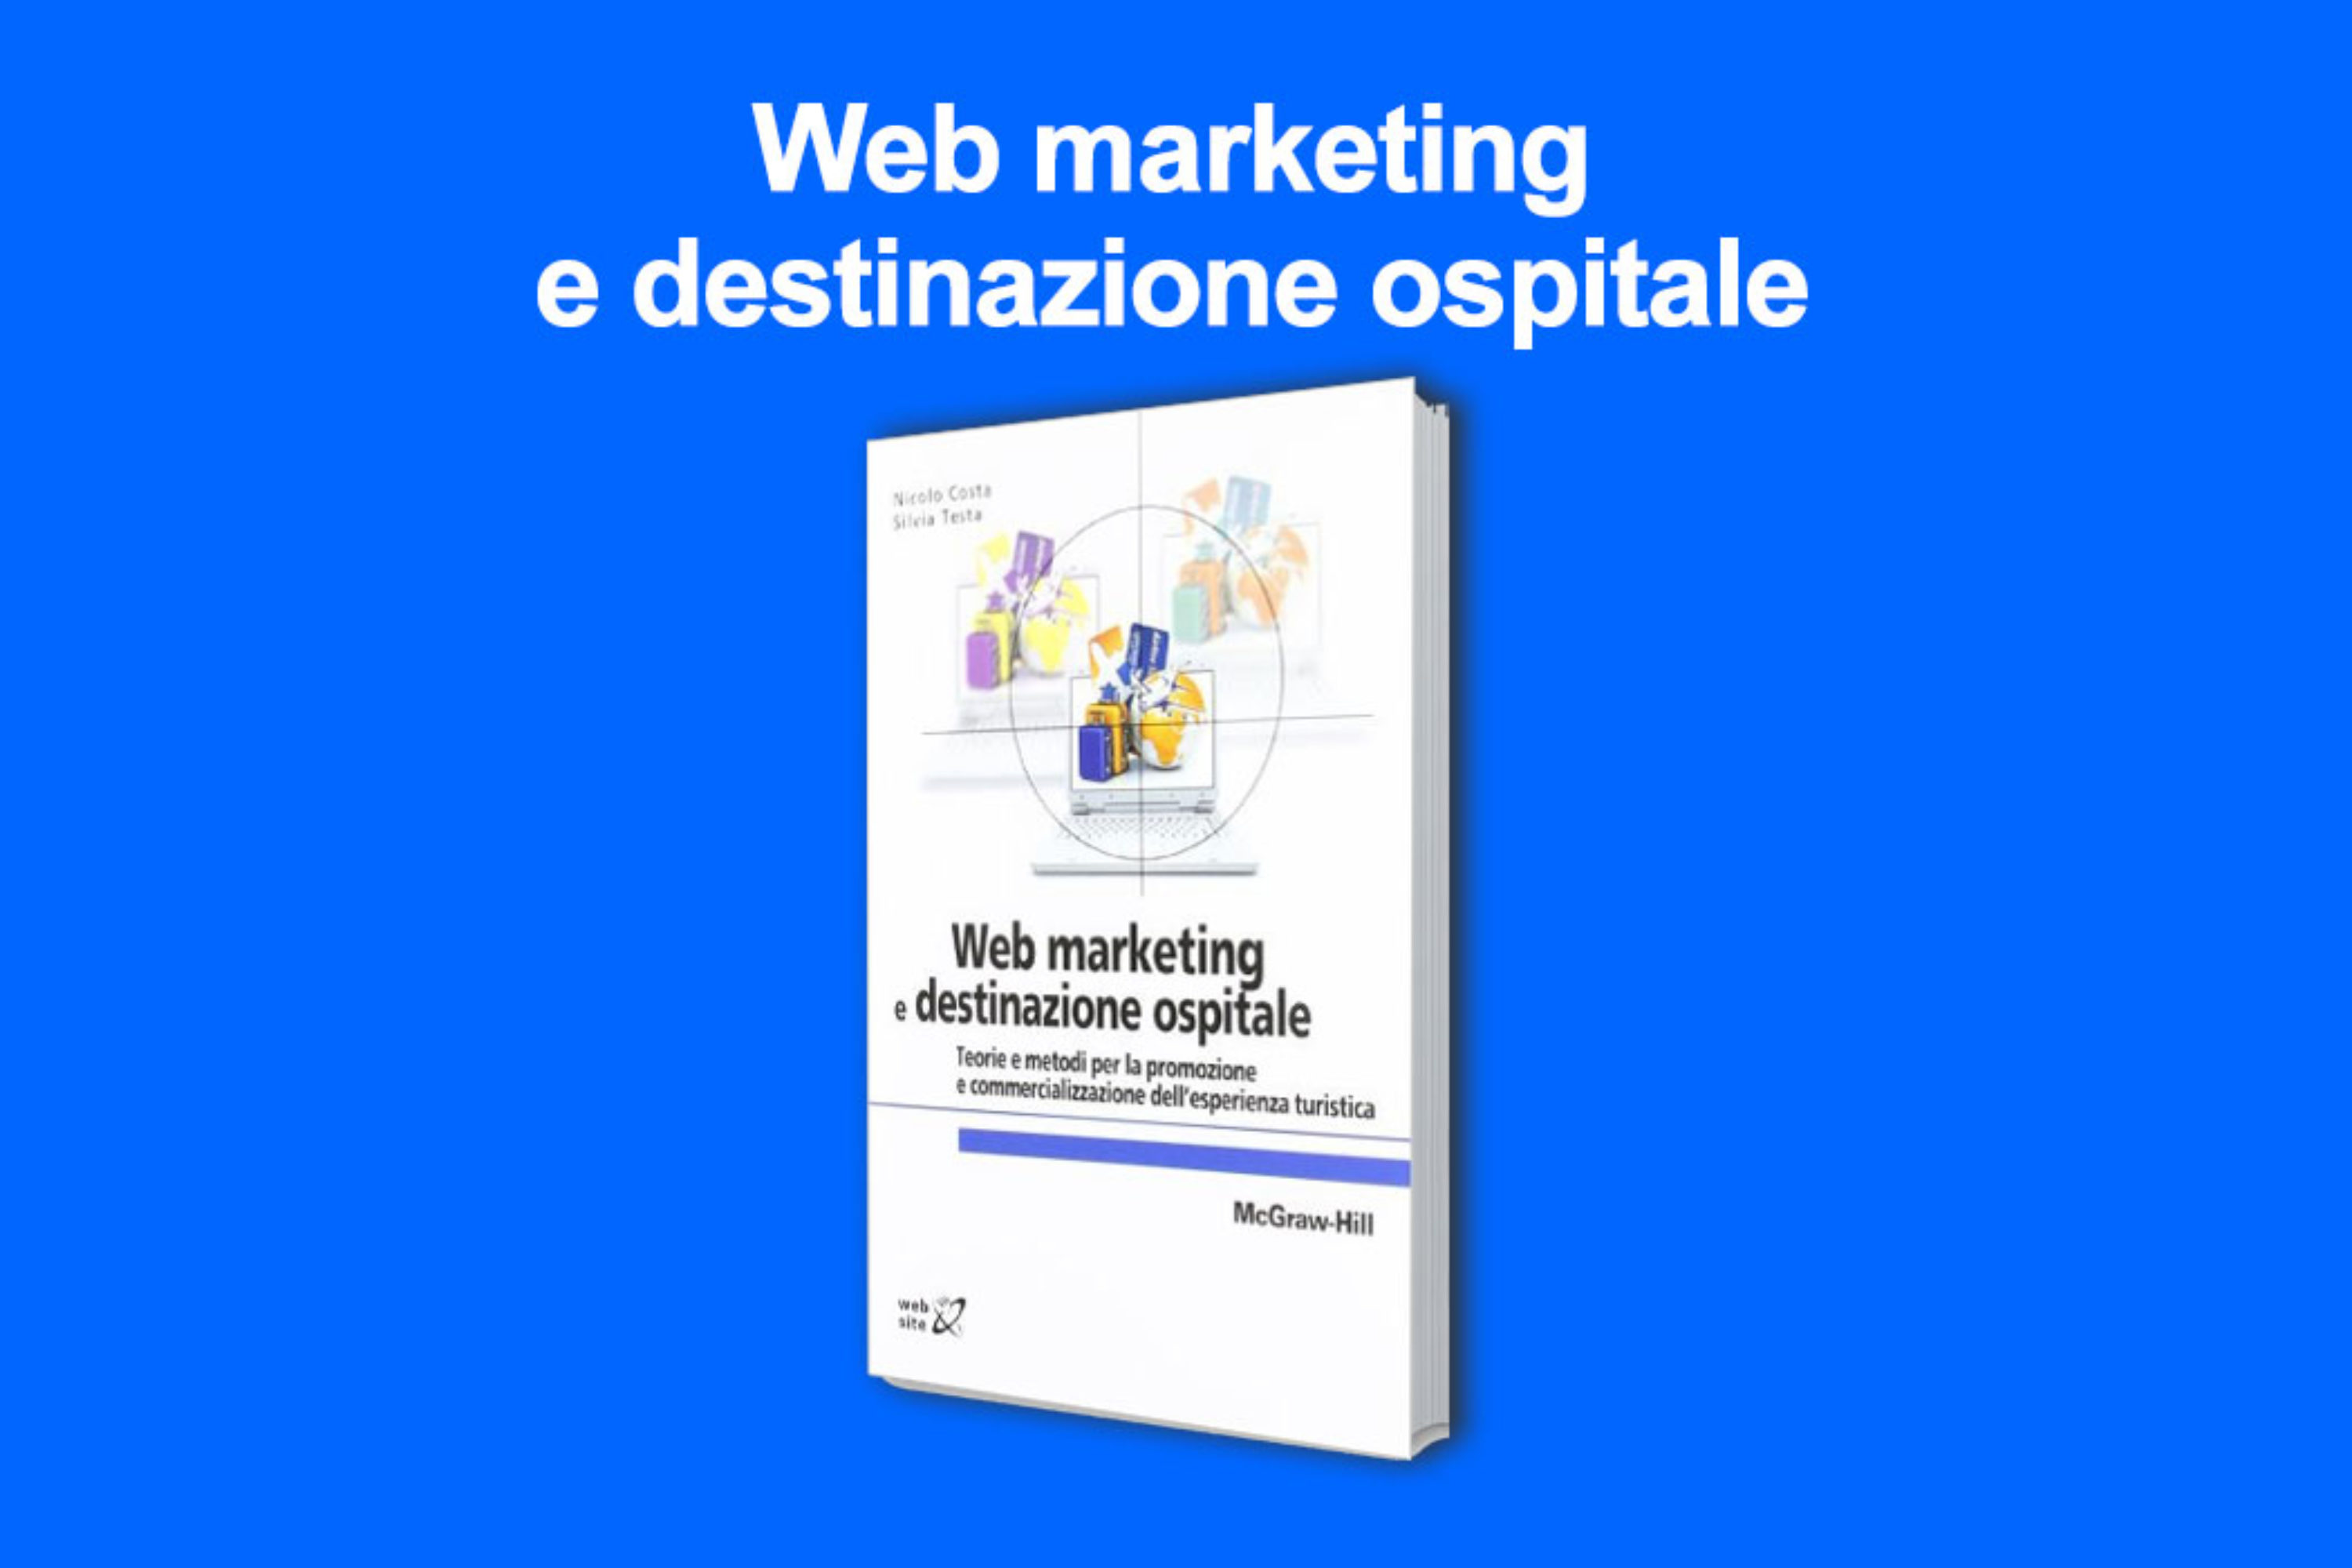 Webmarketing e destinazione ospitale